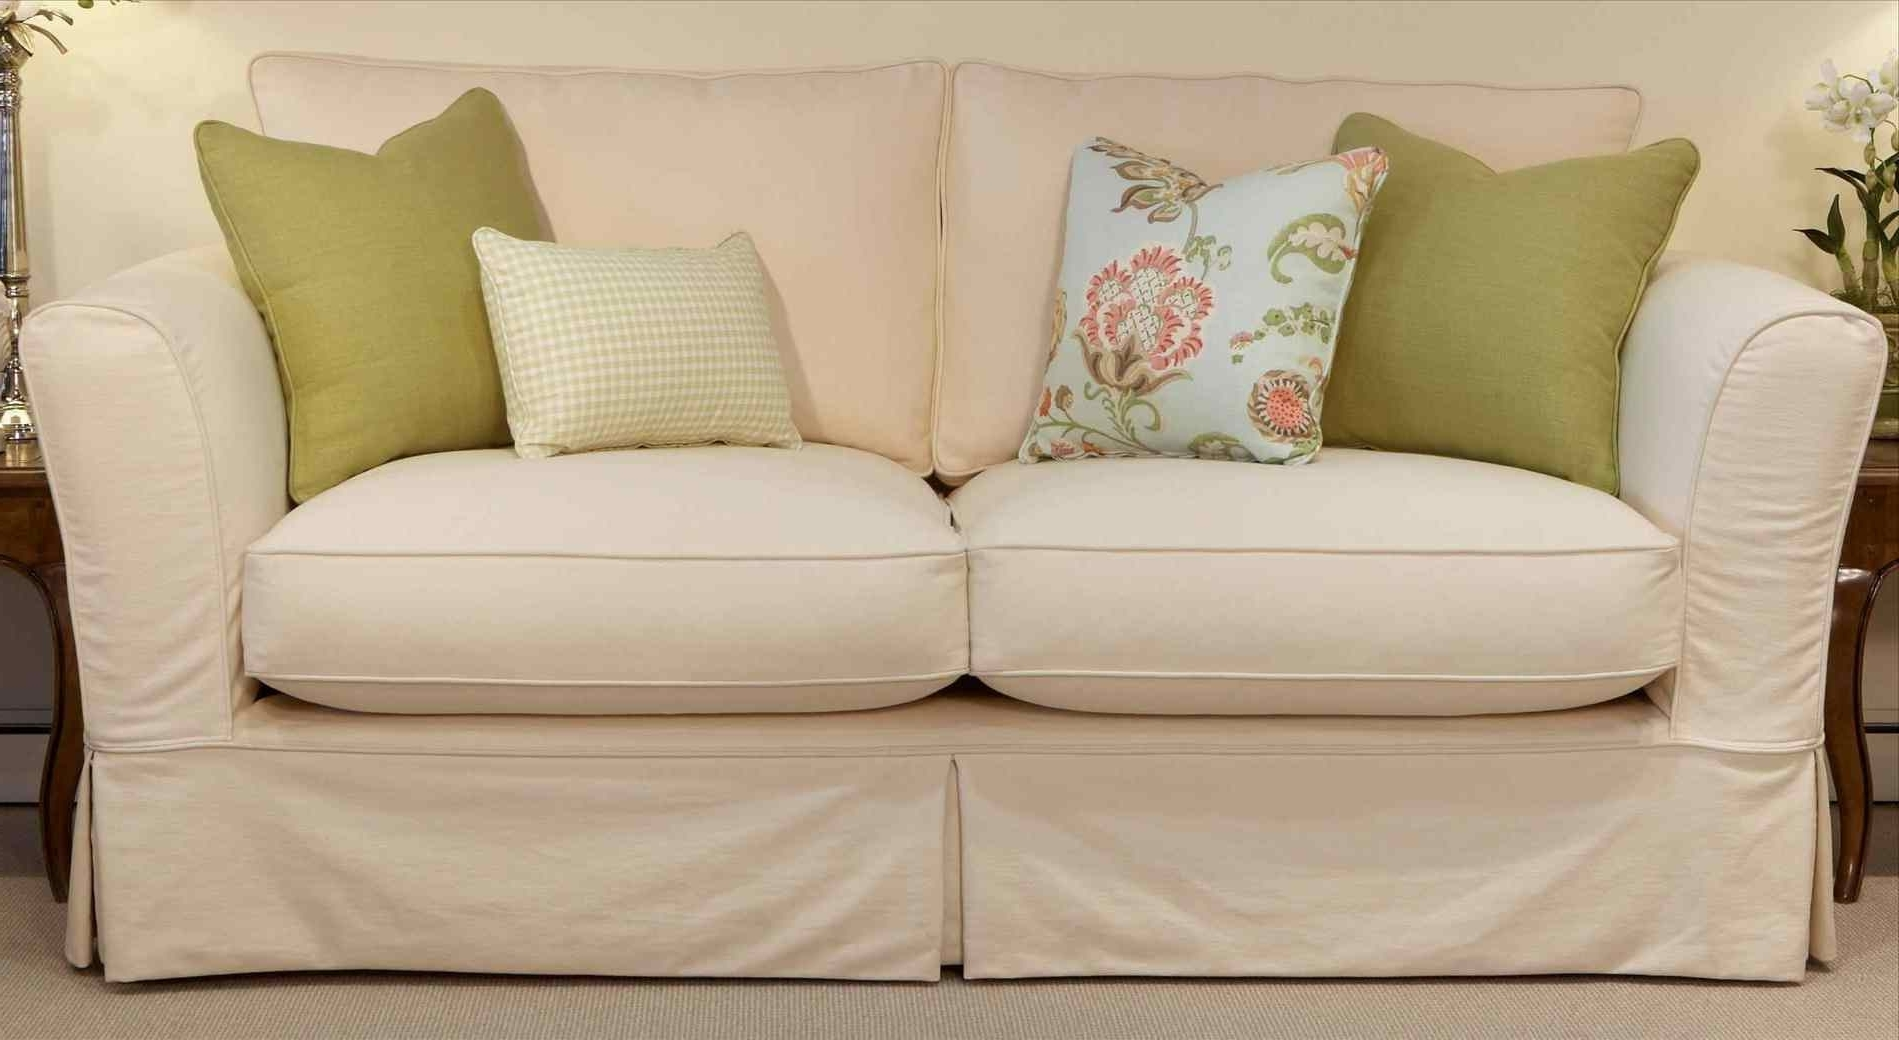 Widely Used Sofas With Removable Covers For Sofa : Removable Covers Sofa Ideas Traditional Fabric Seater Cover (View 19 of 20)